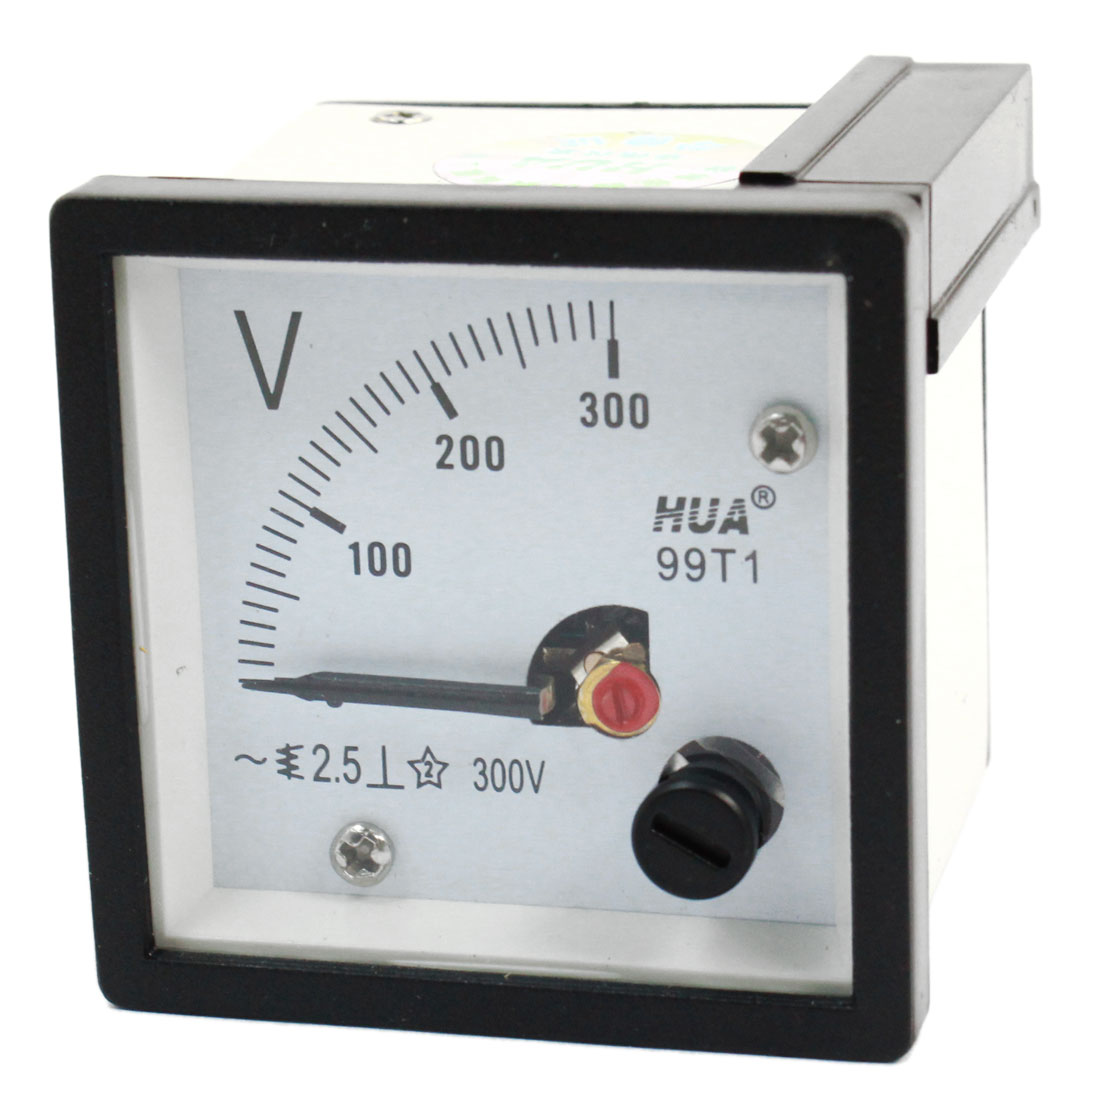 AC 0-300V Class 2.5 Square Shape Analog Volt Panel Mount Meter Gauge